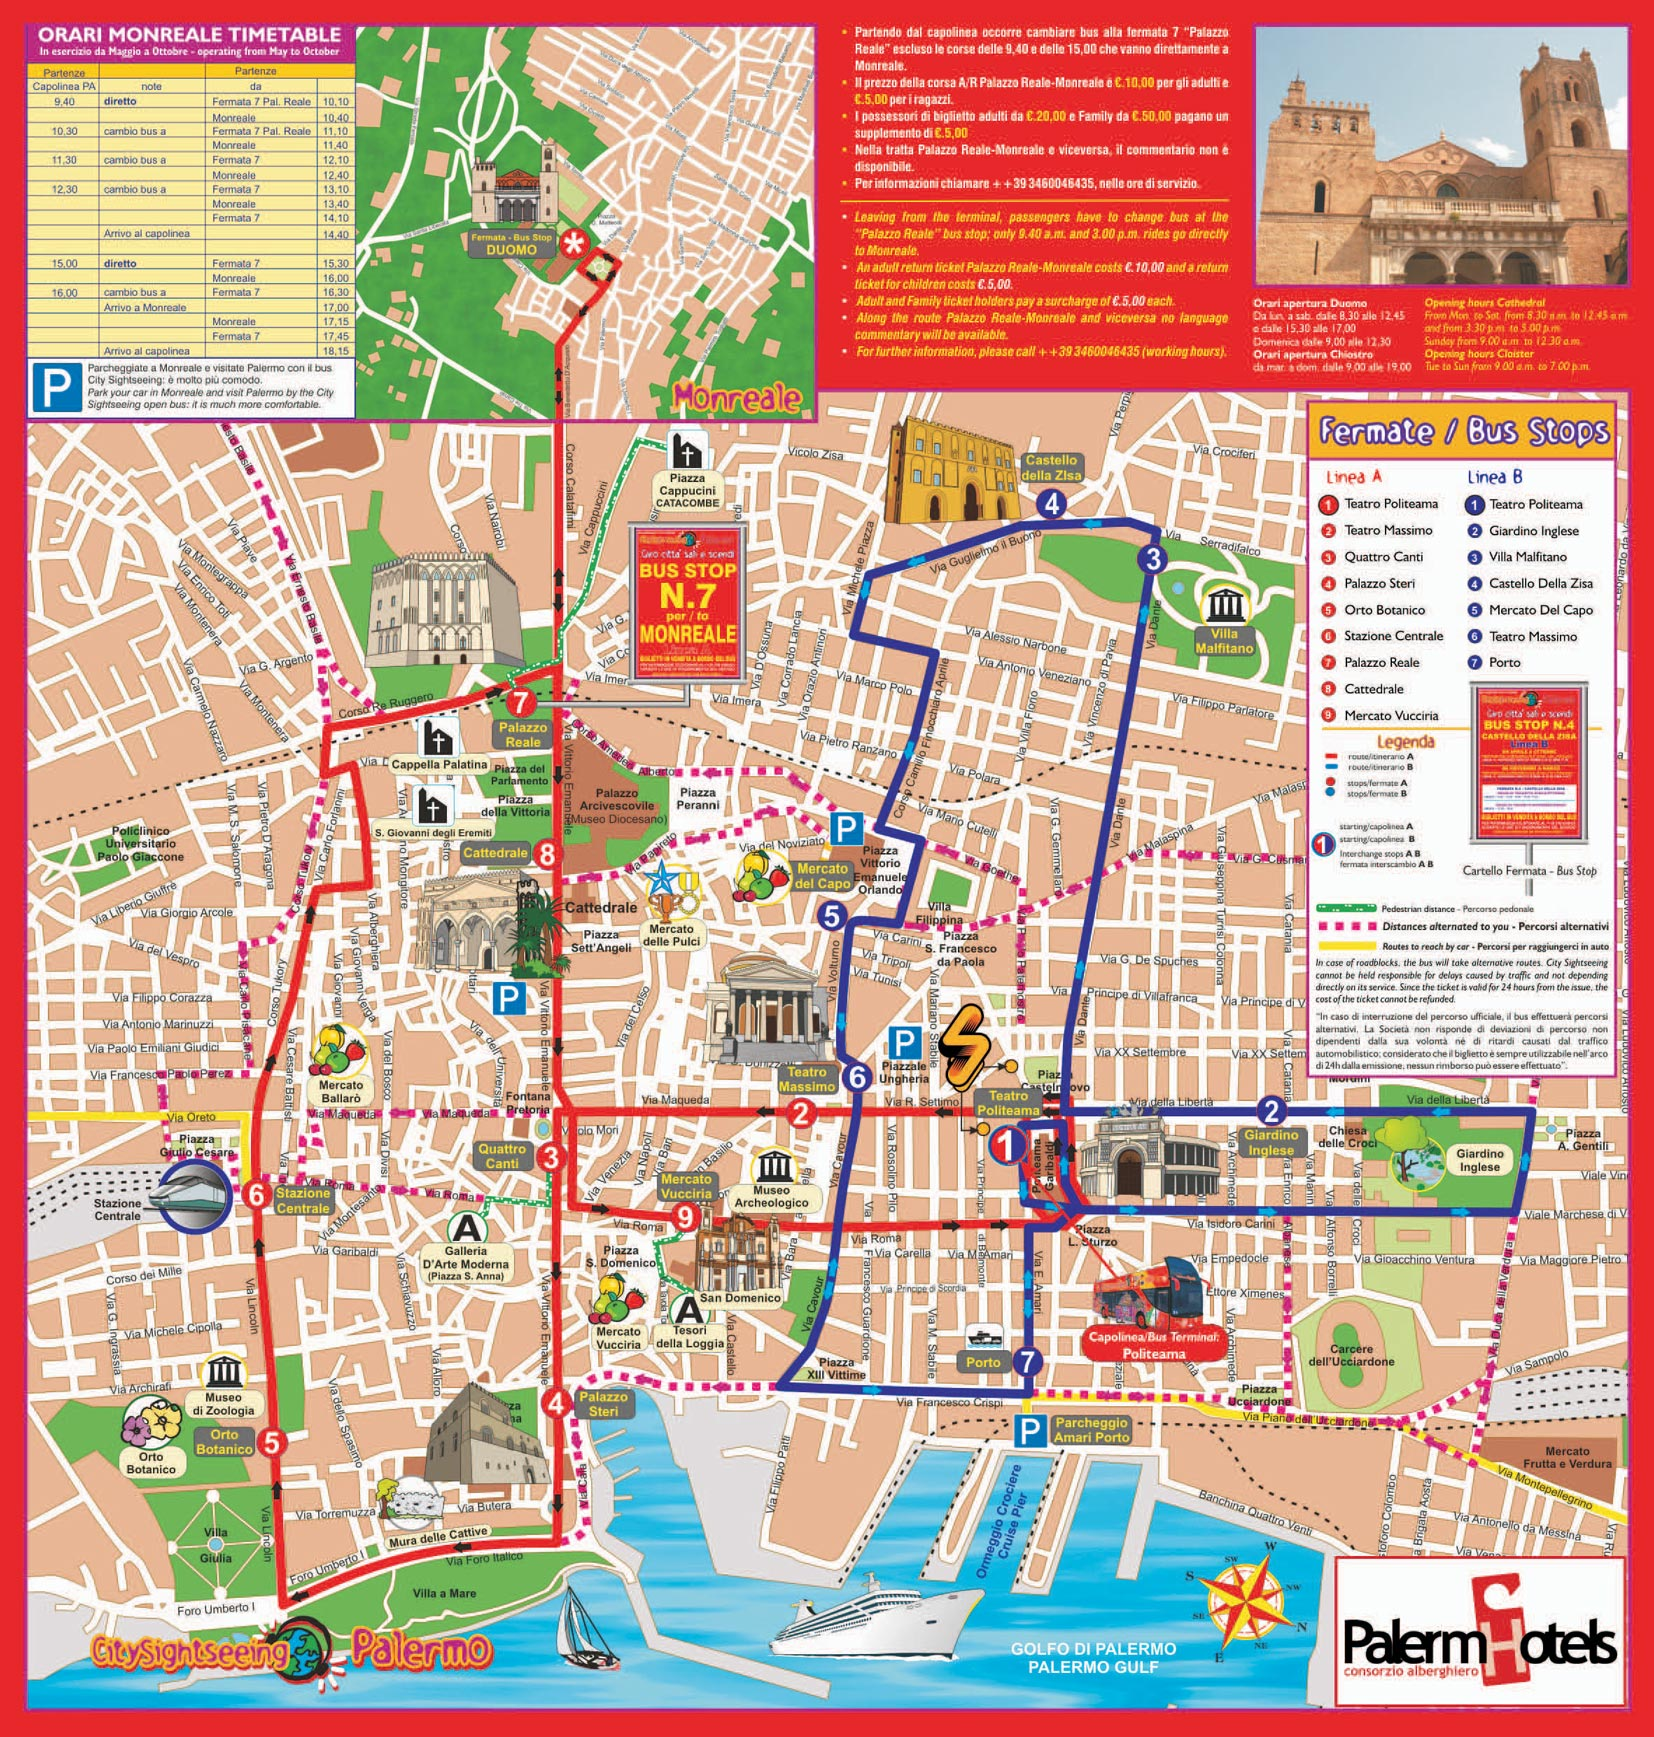 243_Palermo-Route-Map-to-site